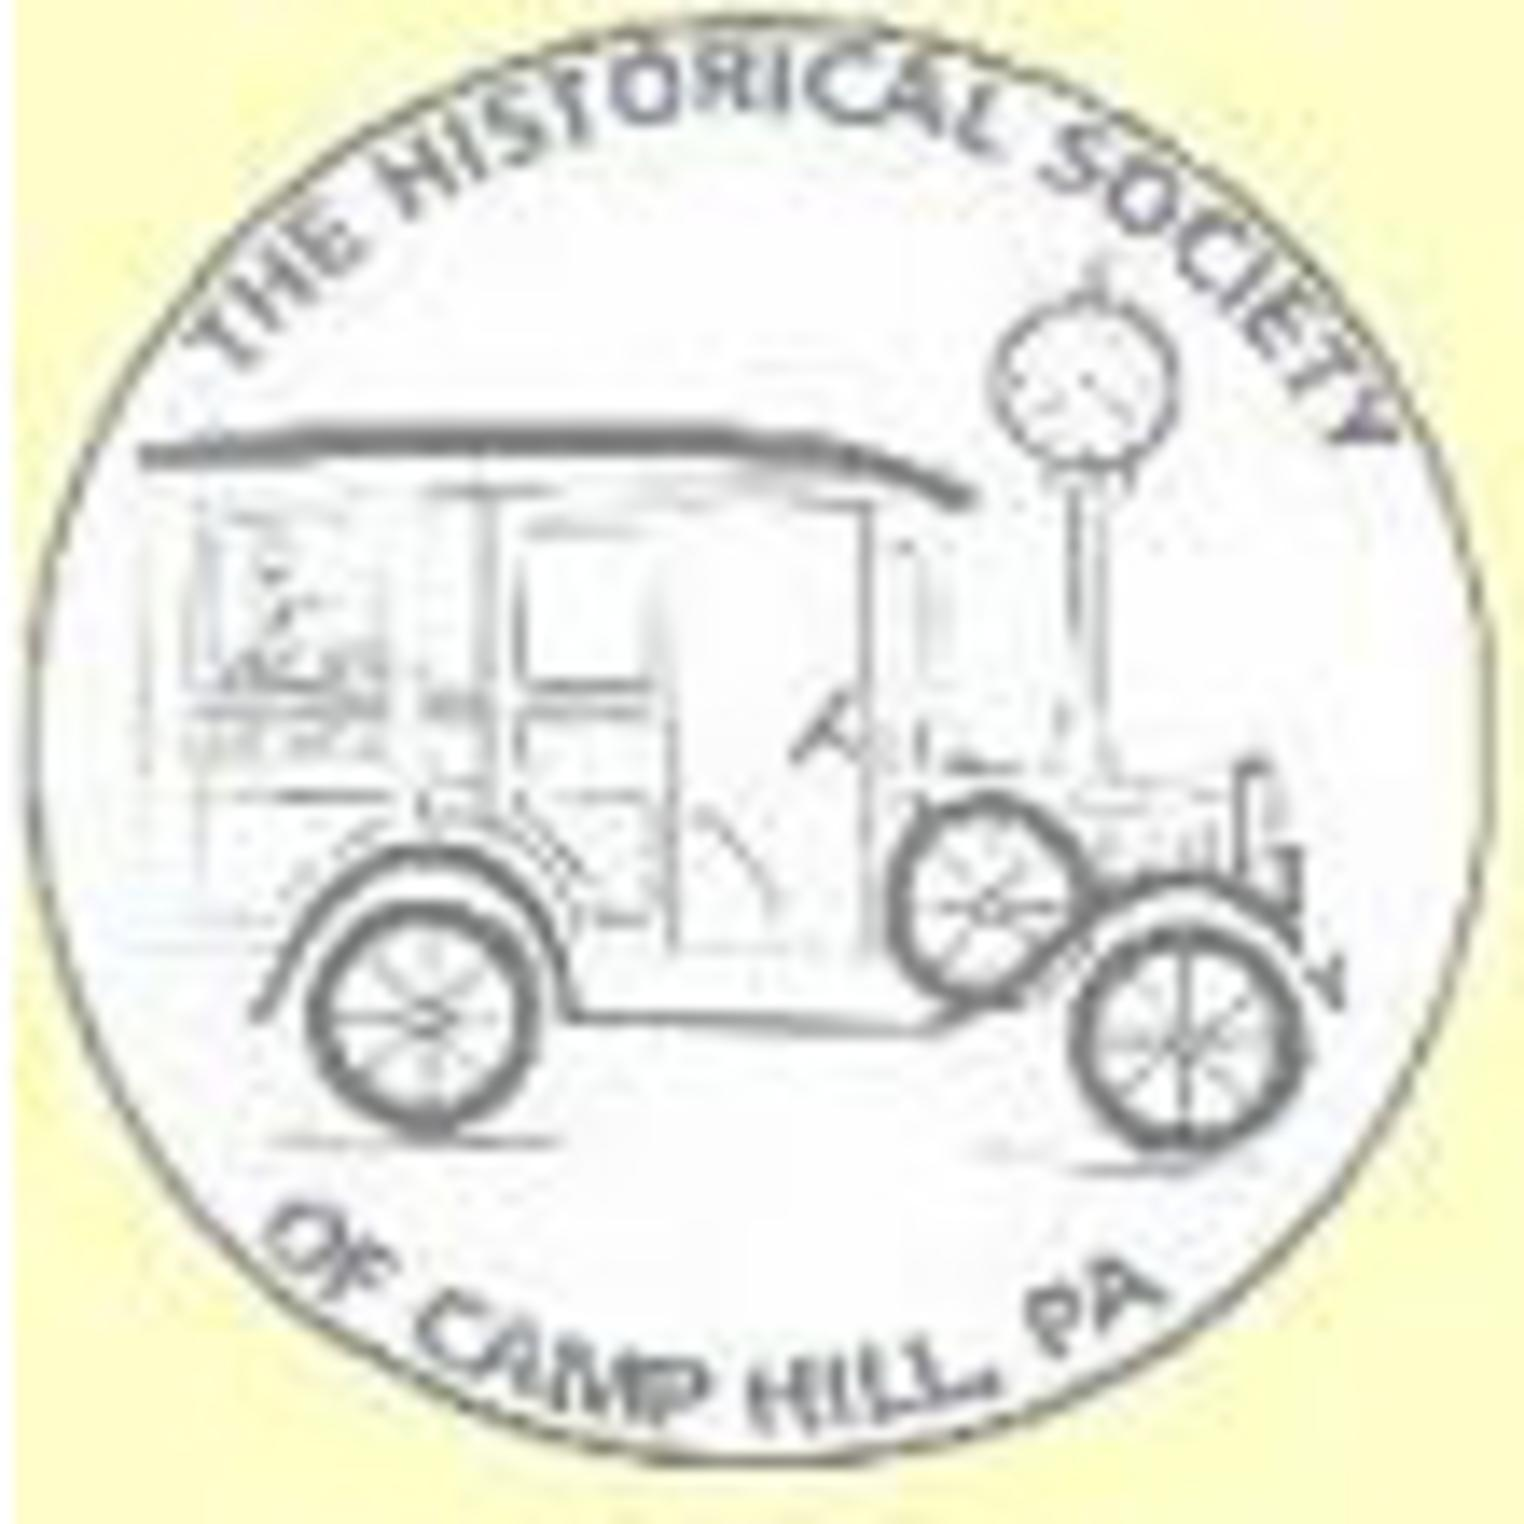 Historical Society of Camp Hill